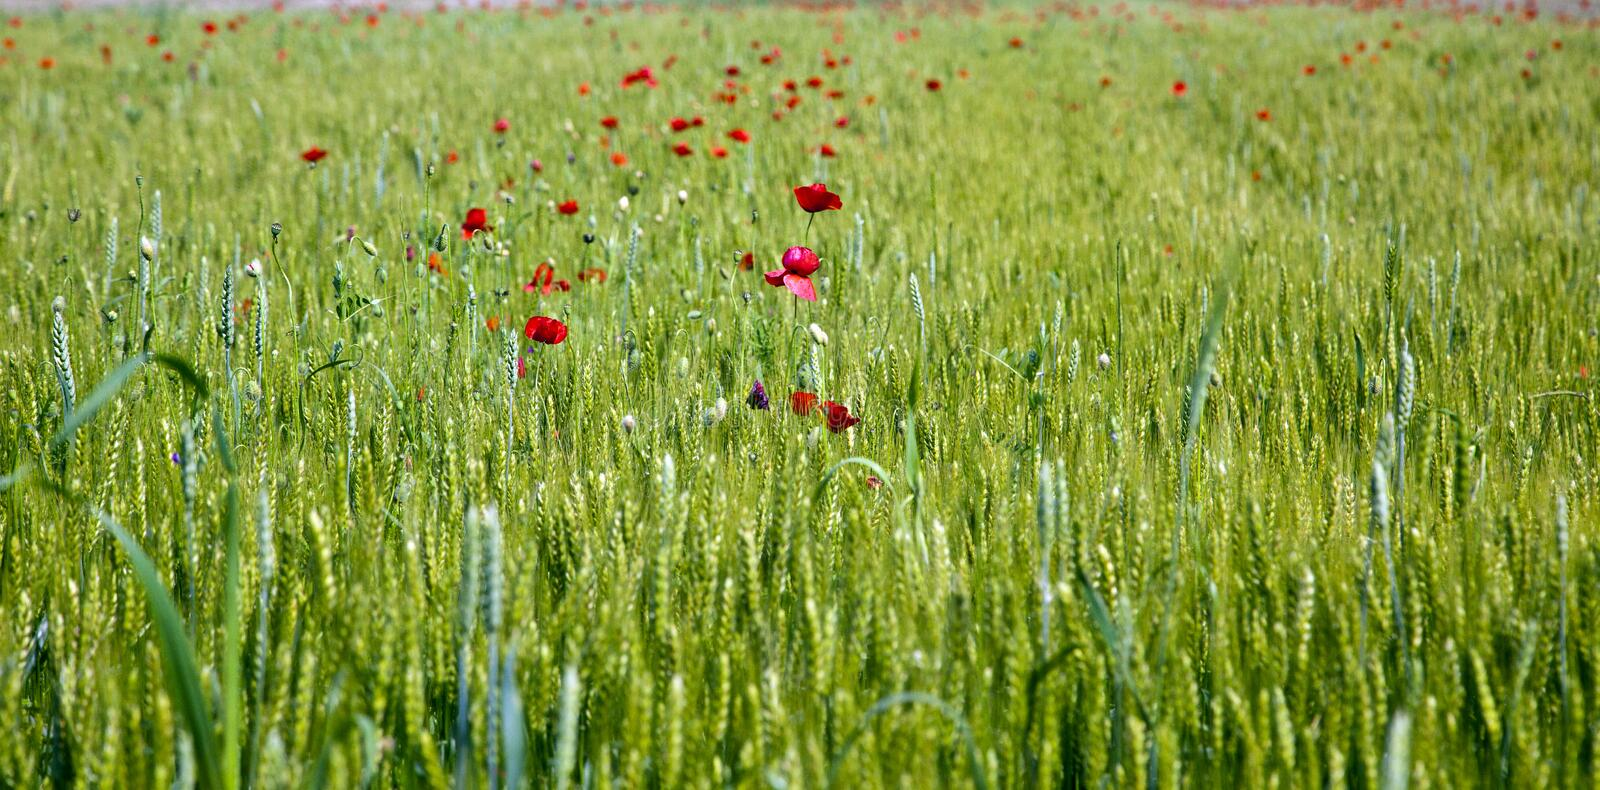 Flower on the field of wheat royalty free stock images